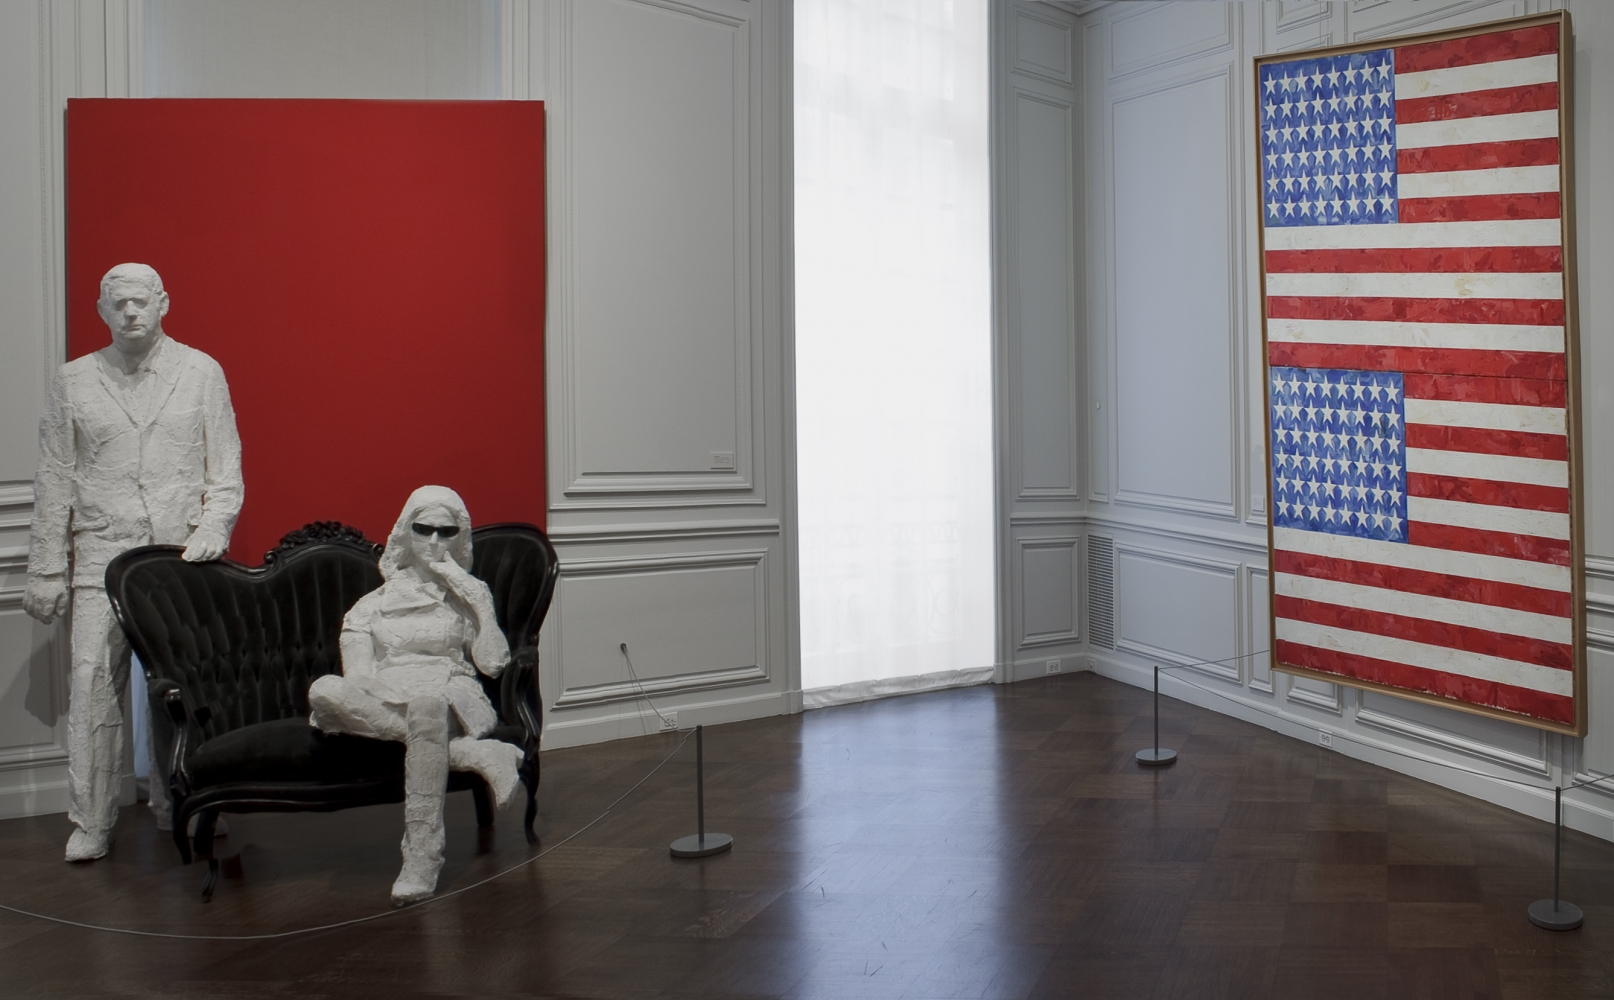 Installation view of Robert & Ethel Scull: Portrait of a Collection, April 12 - May 26, 2010. Art © The George and Helen Segal Foundation / Licensed by VAGA at ARS, New York and © 2021 Jasper Johns / Licensed by VAGA at Artists Rights Society (ARS), New York.